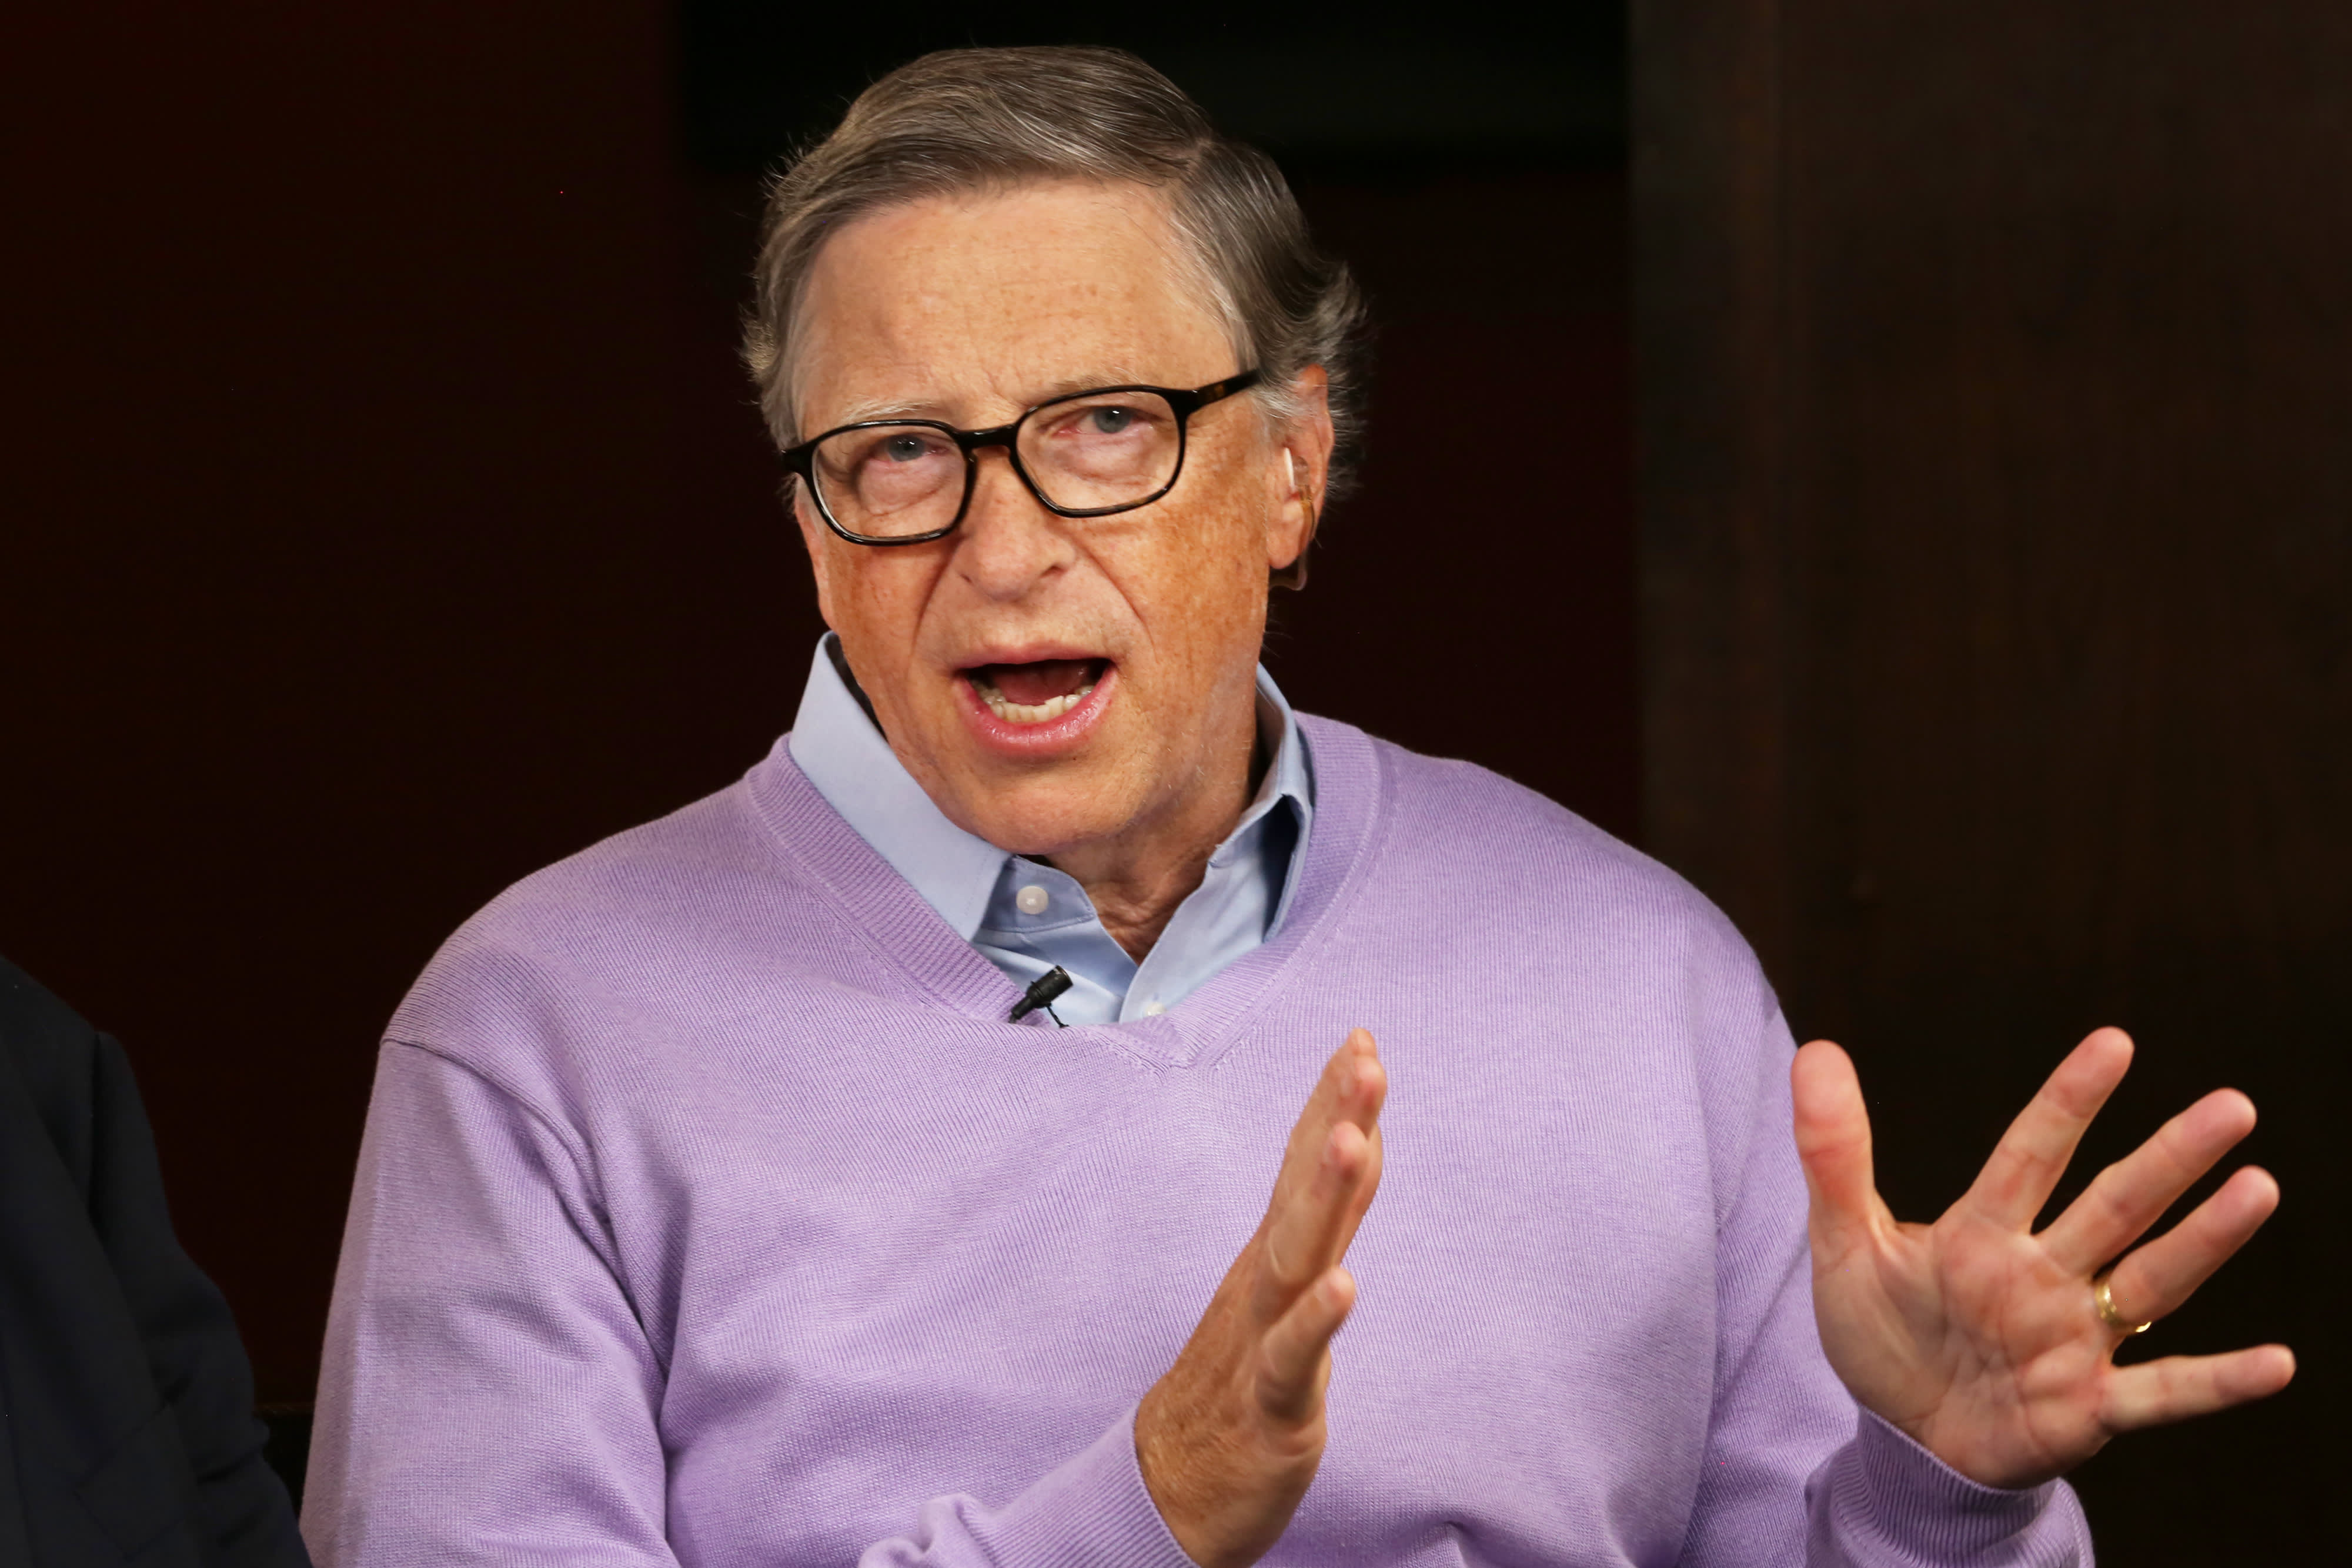 Bill Gates: If I were president, this is what I would do now to fight coronavirus